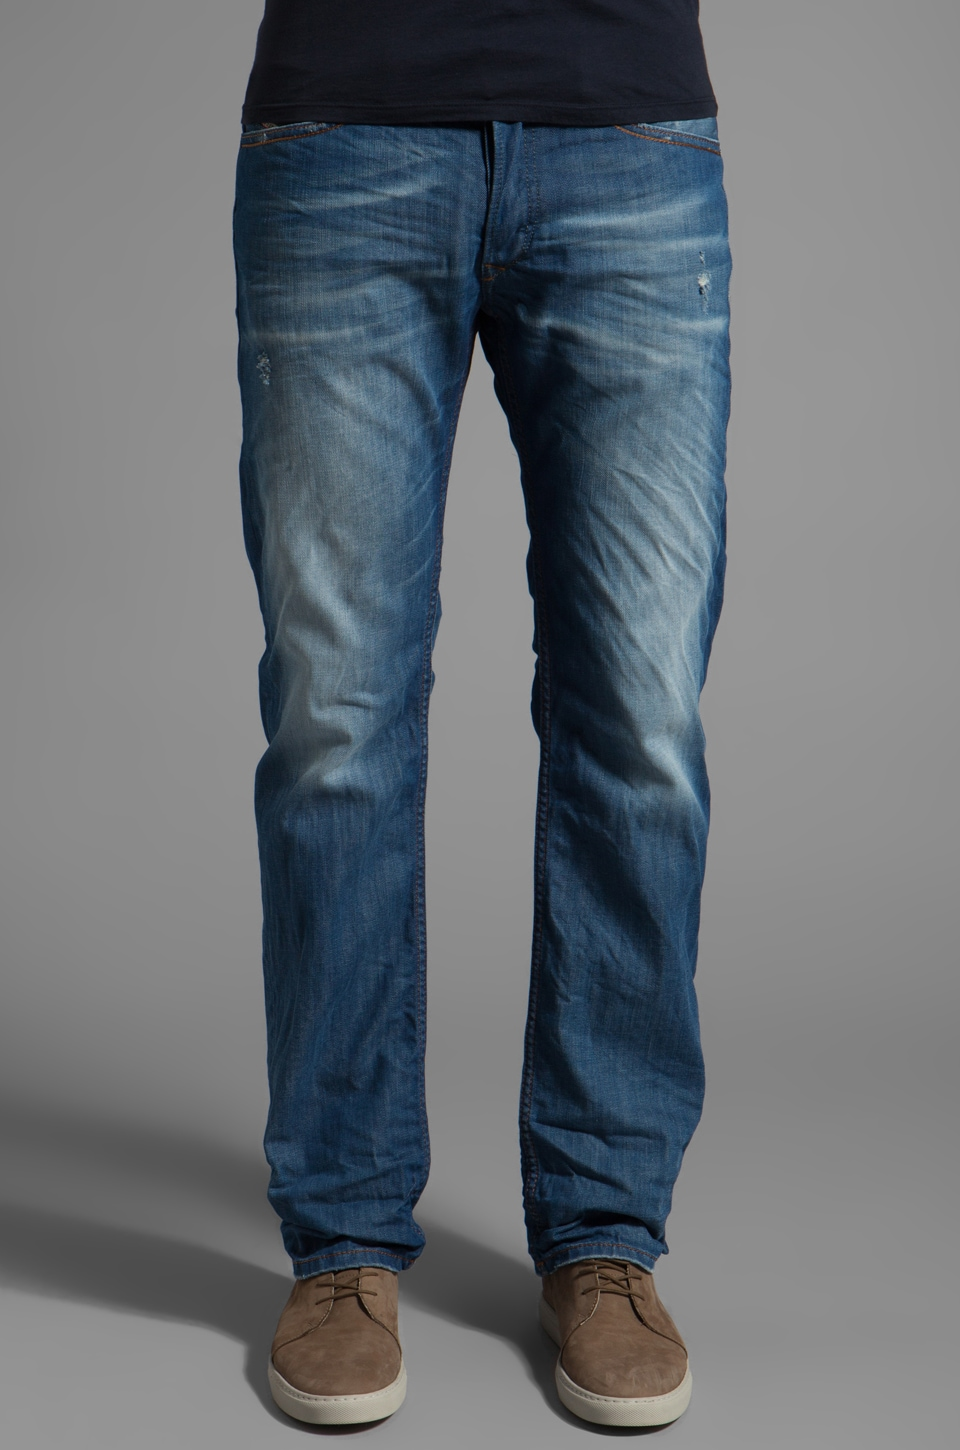 Diesel Viker in Denim